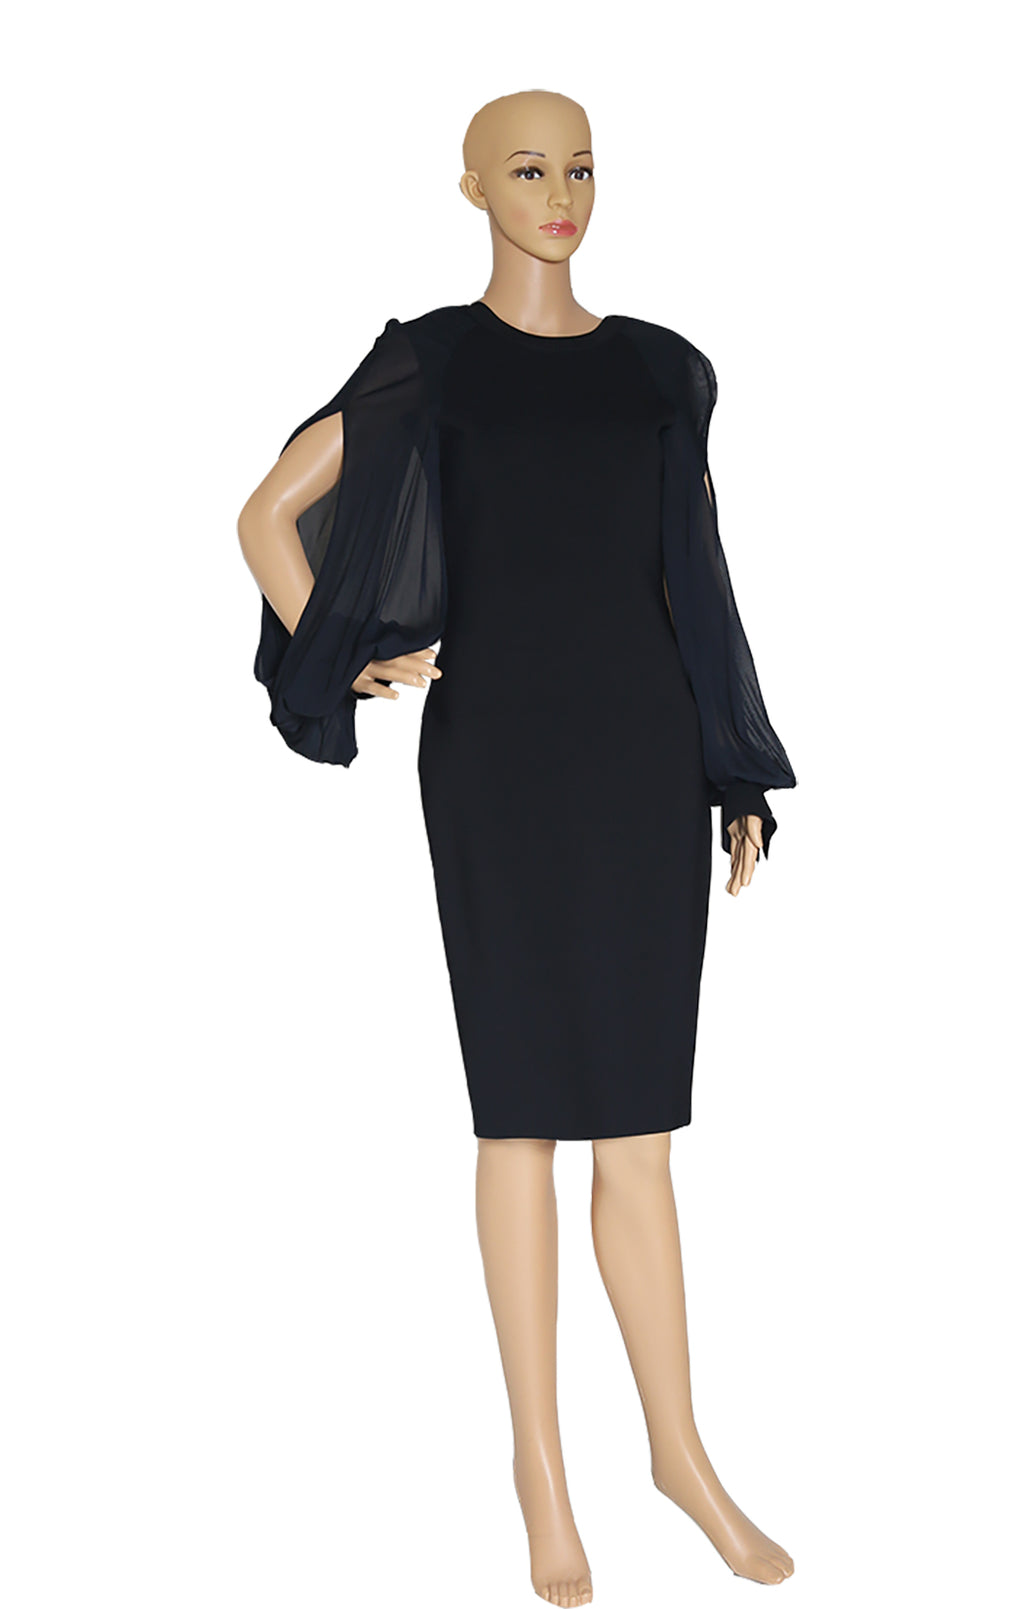 Front view of GIVENCHY Black Balloon Sleeve Dress Size: M